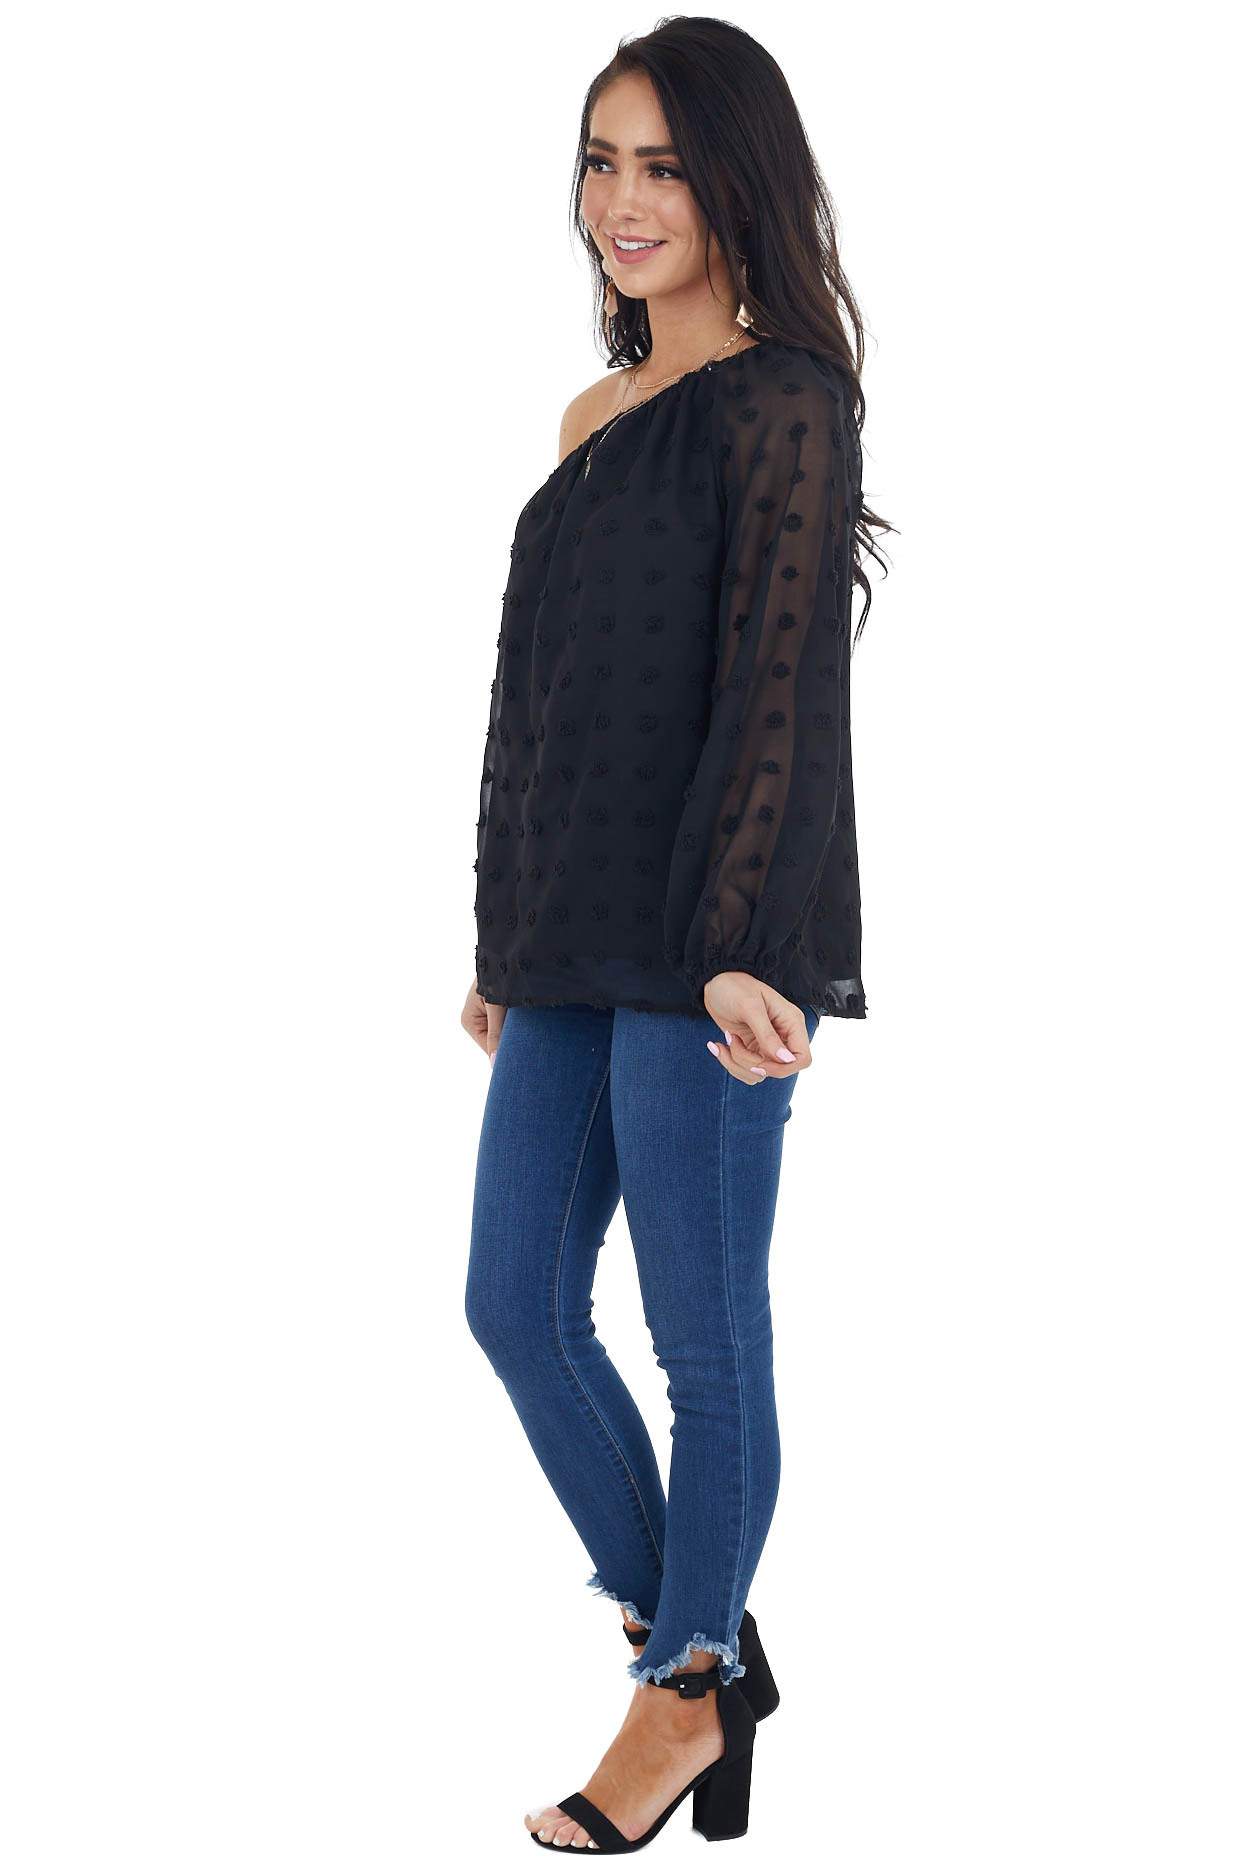 Black Large Swiss Dot Woven Chiffon Blouse with One Shoulder